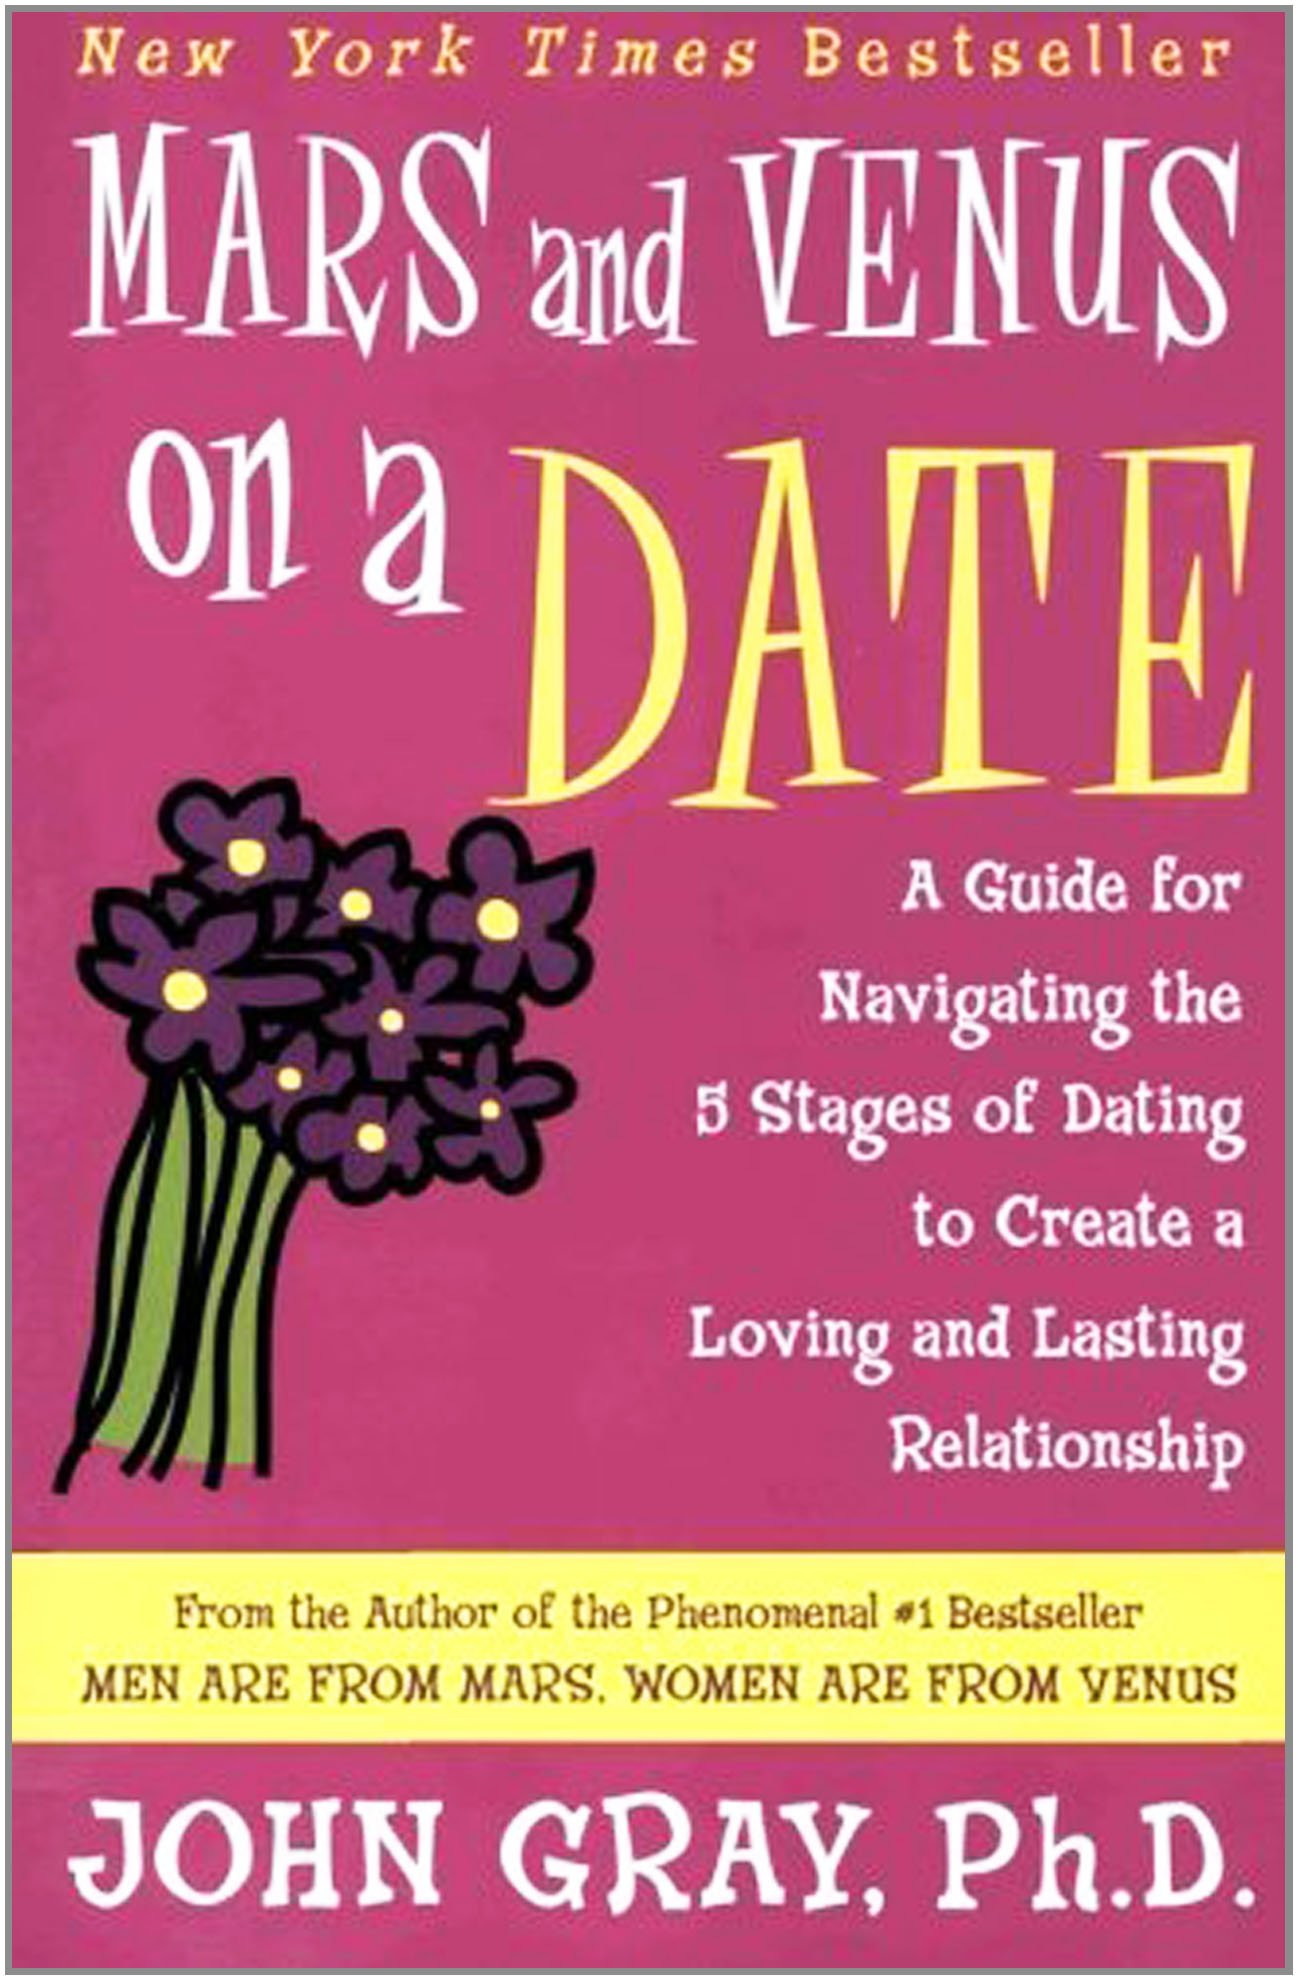 Mars and venus on a date a guide for navigating the 5 stages of mars and venus on a date a guide for navigating the 5 stages of dating to create a loving and lasting relationship john gray 9780060932213 amazon fandeluxe Image collections